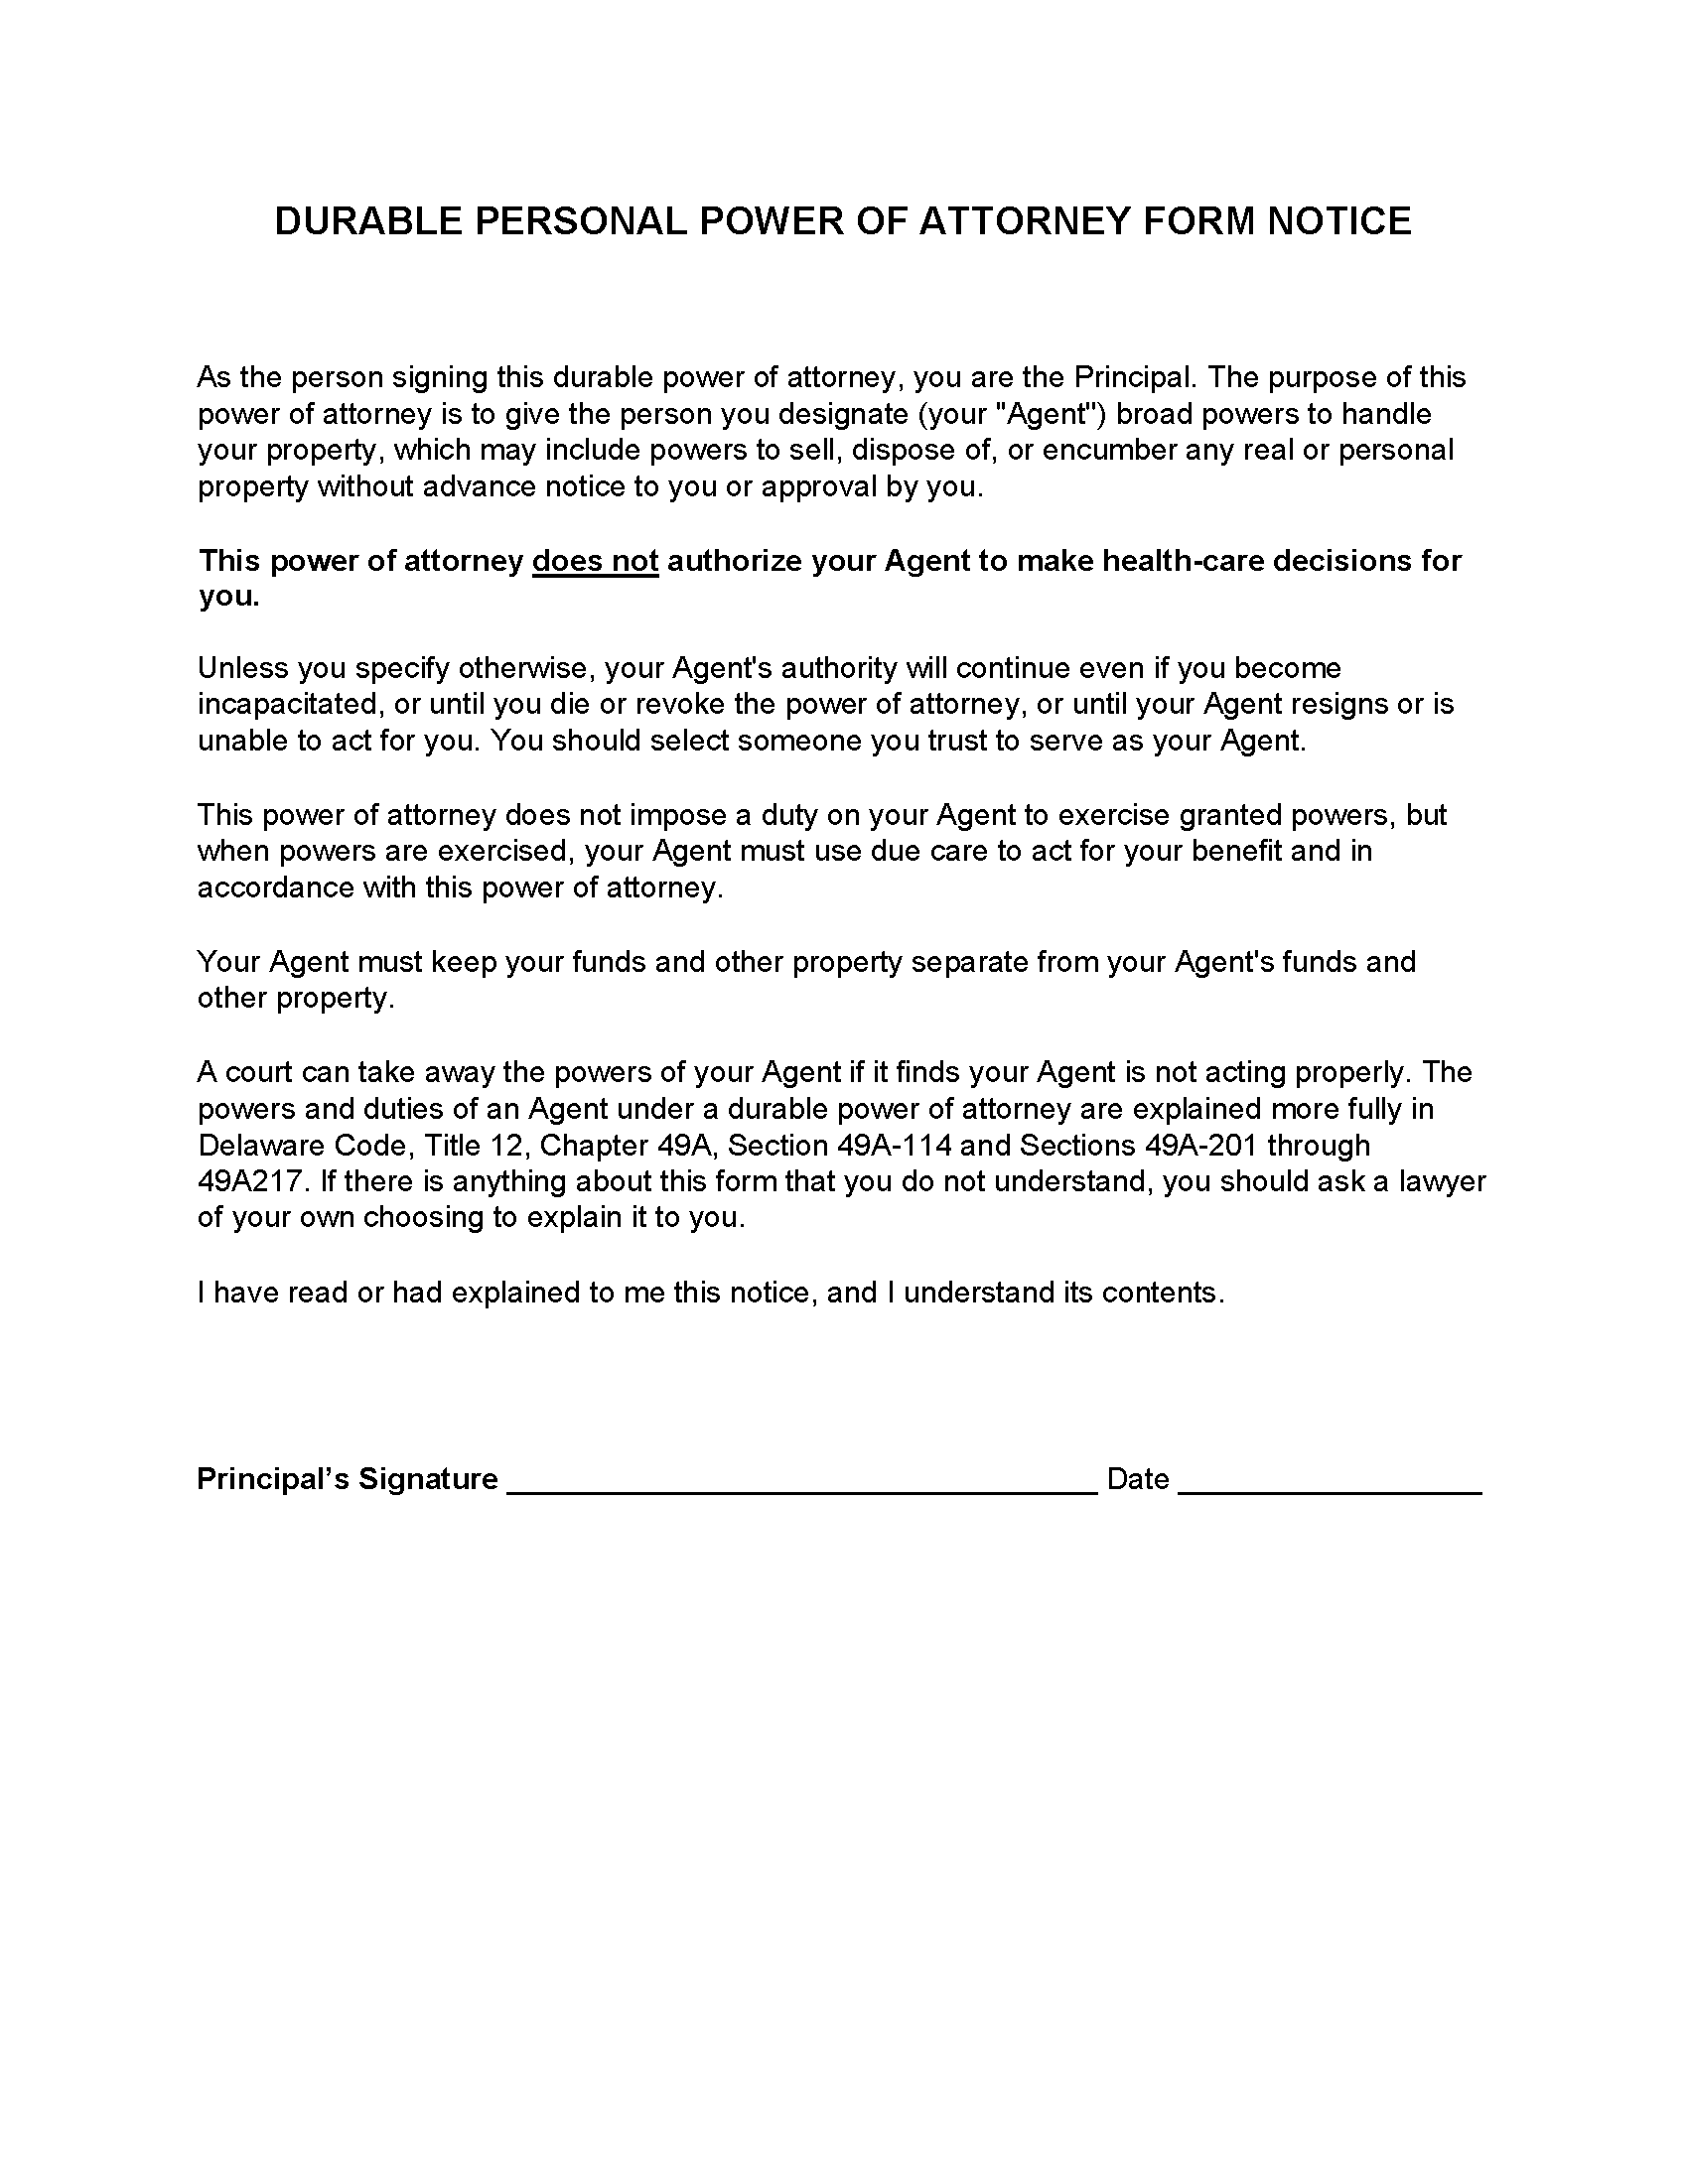 Delaware Durable Power of Attorney Form